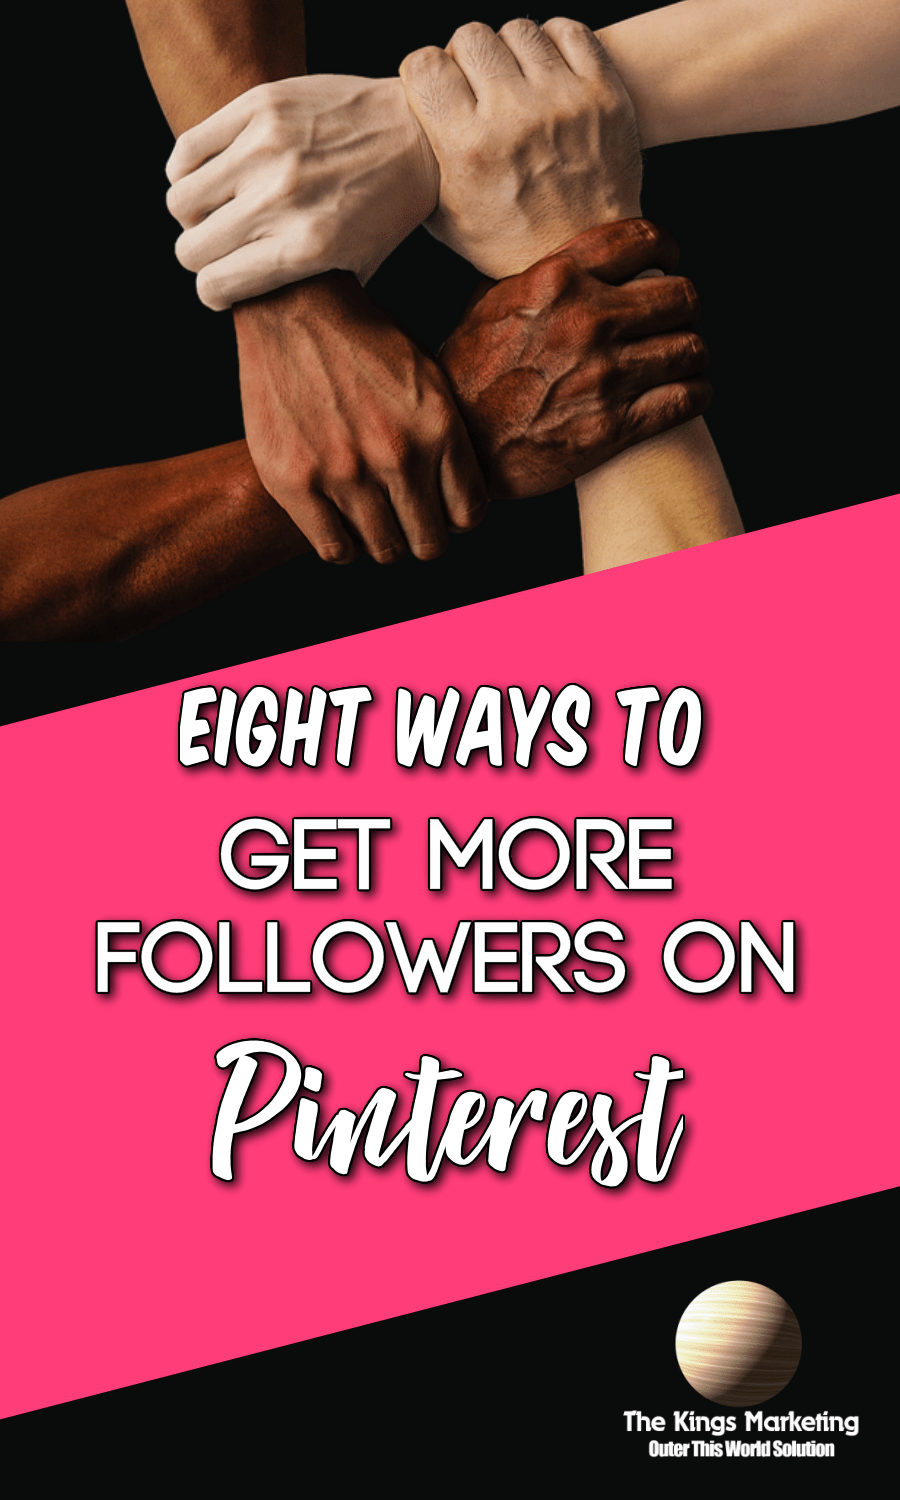 Eight Ways to Get More Followers on Pinterest